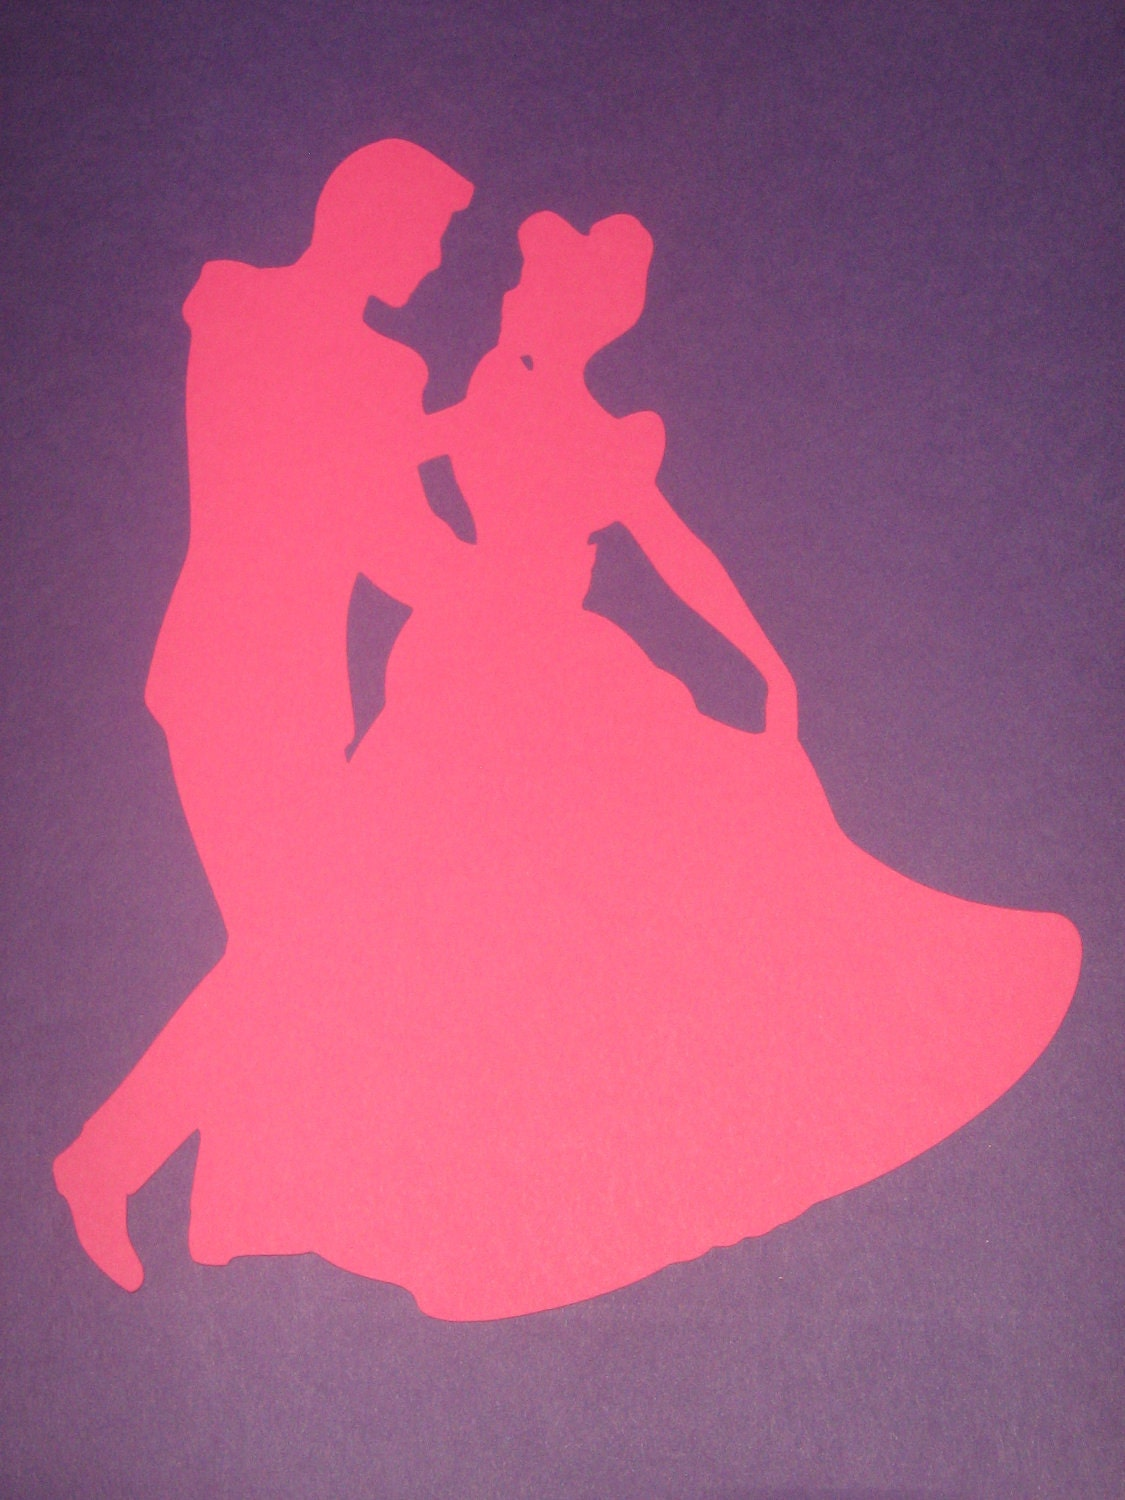 Disney Princess Cinderella Silhouettes for by ThePaperdollPrincess Disney Princess Silhouettes